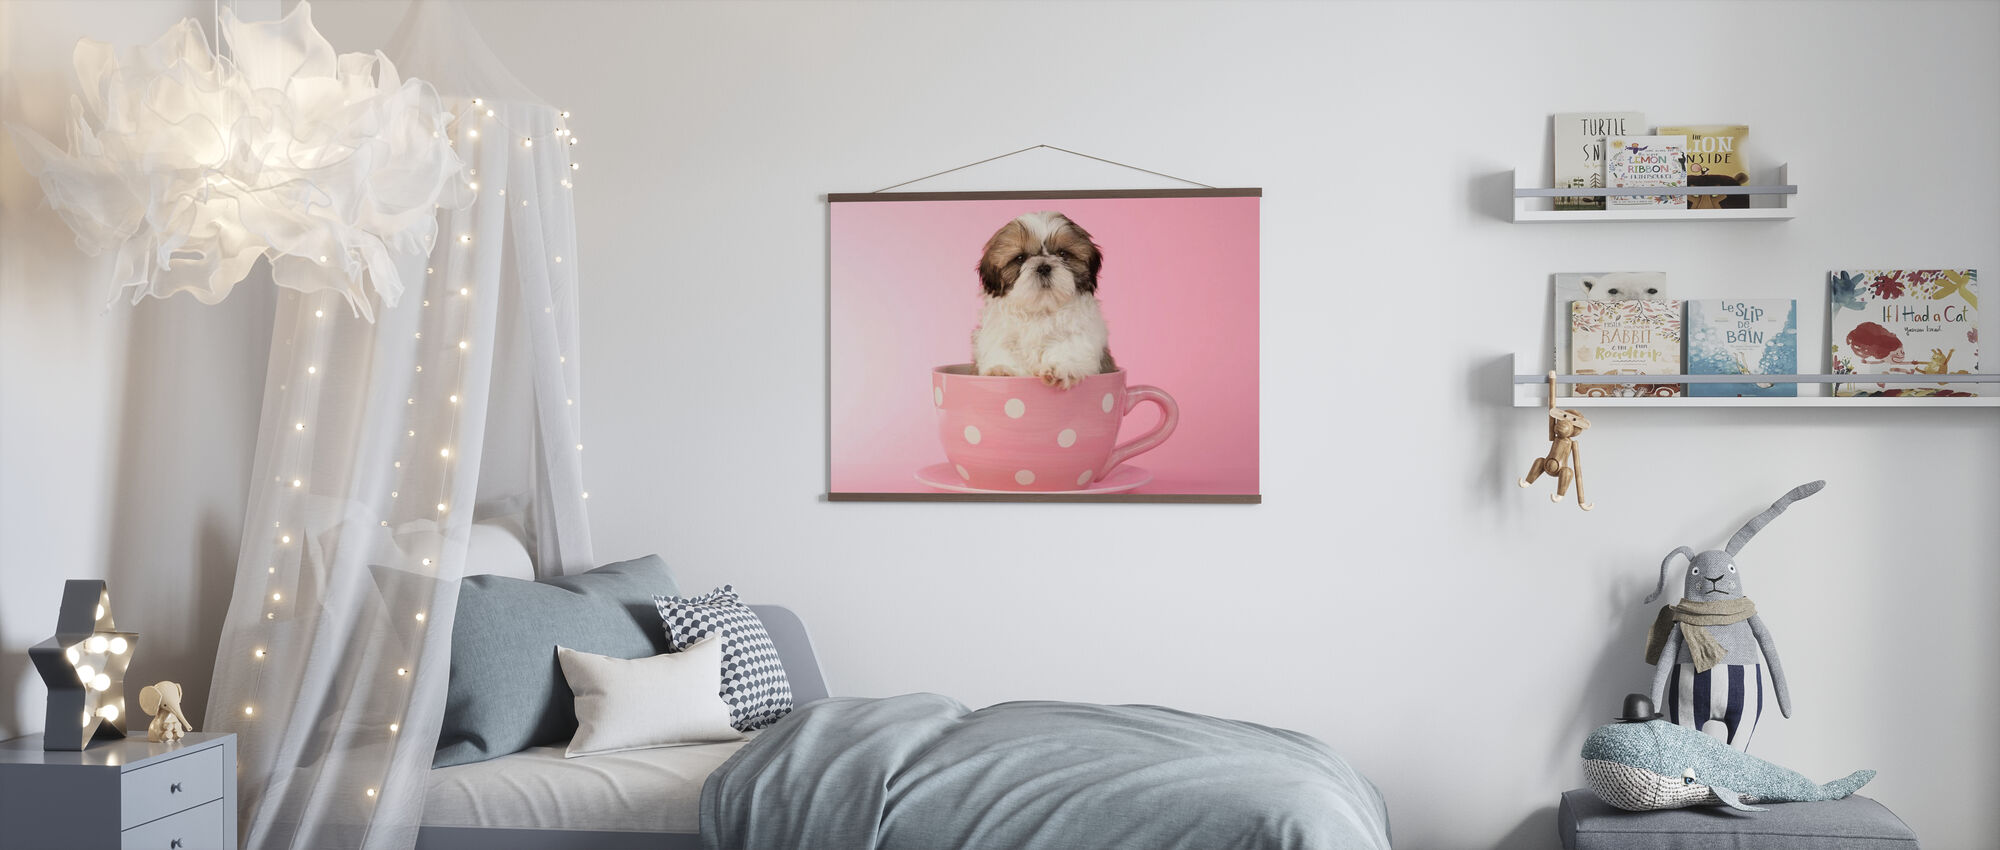 Dog in Cup - Poster - Kids Room